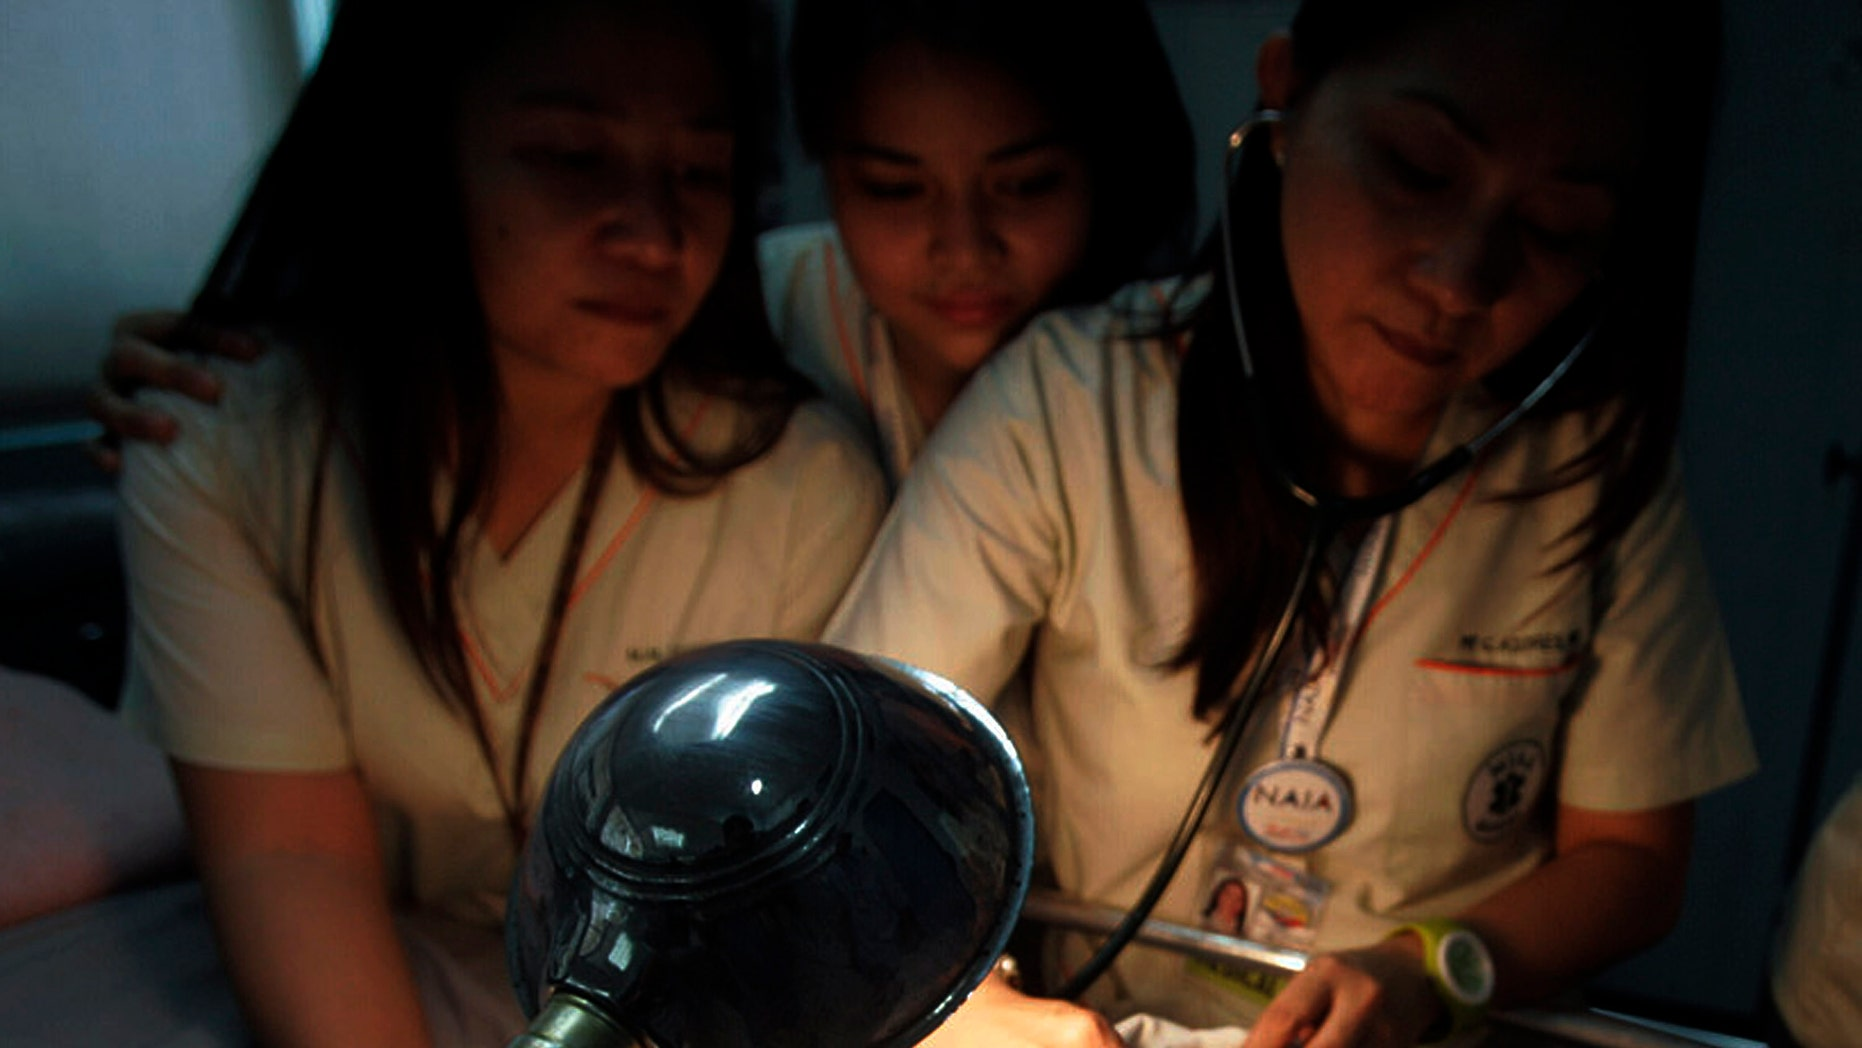 Nurses attend to a newborn baby found inside the lavatory of an airplane Sunday, Sept. 12, 2010, at Manila's international airport, Philippines.